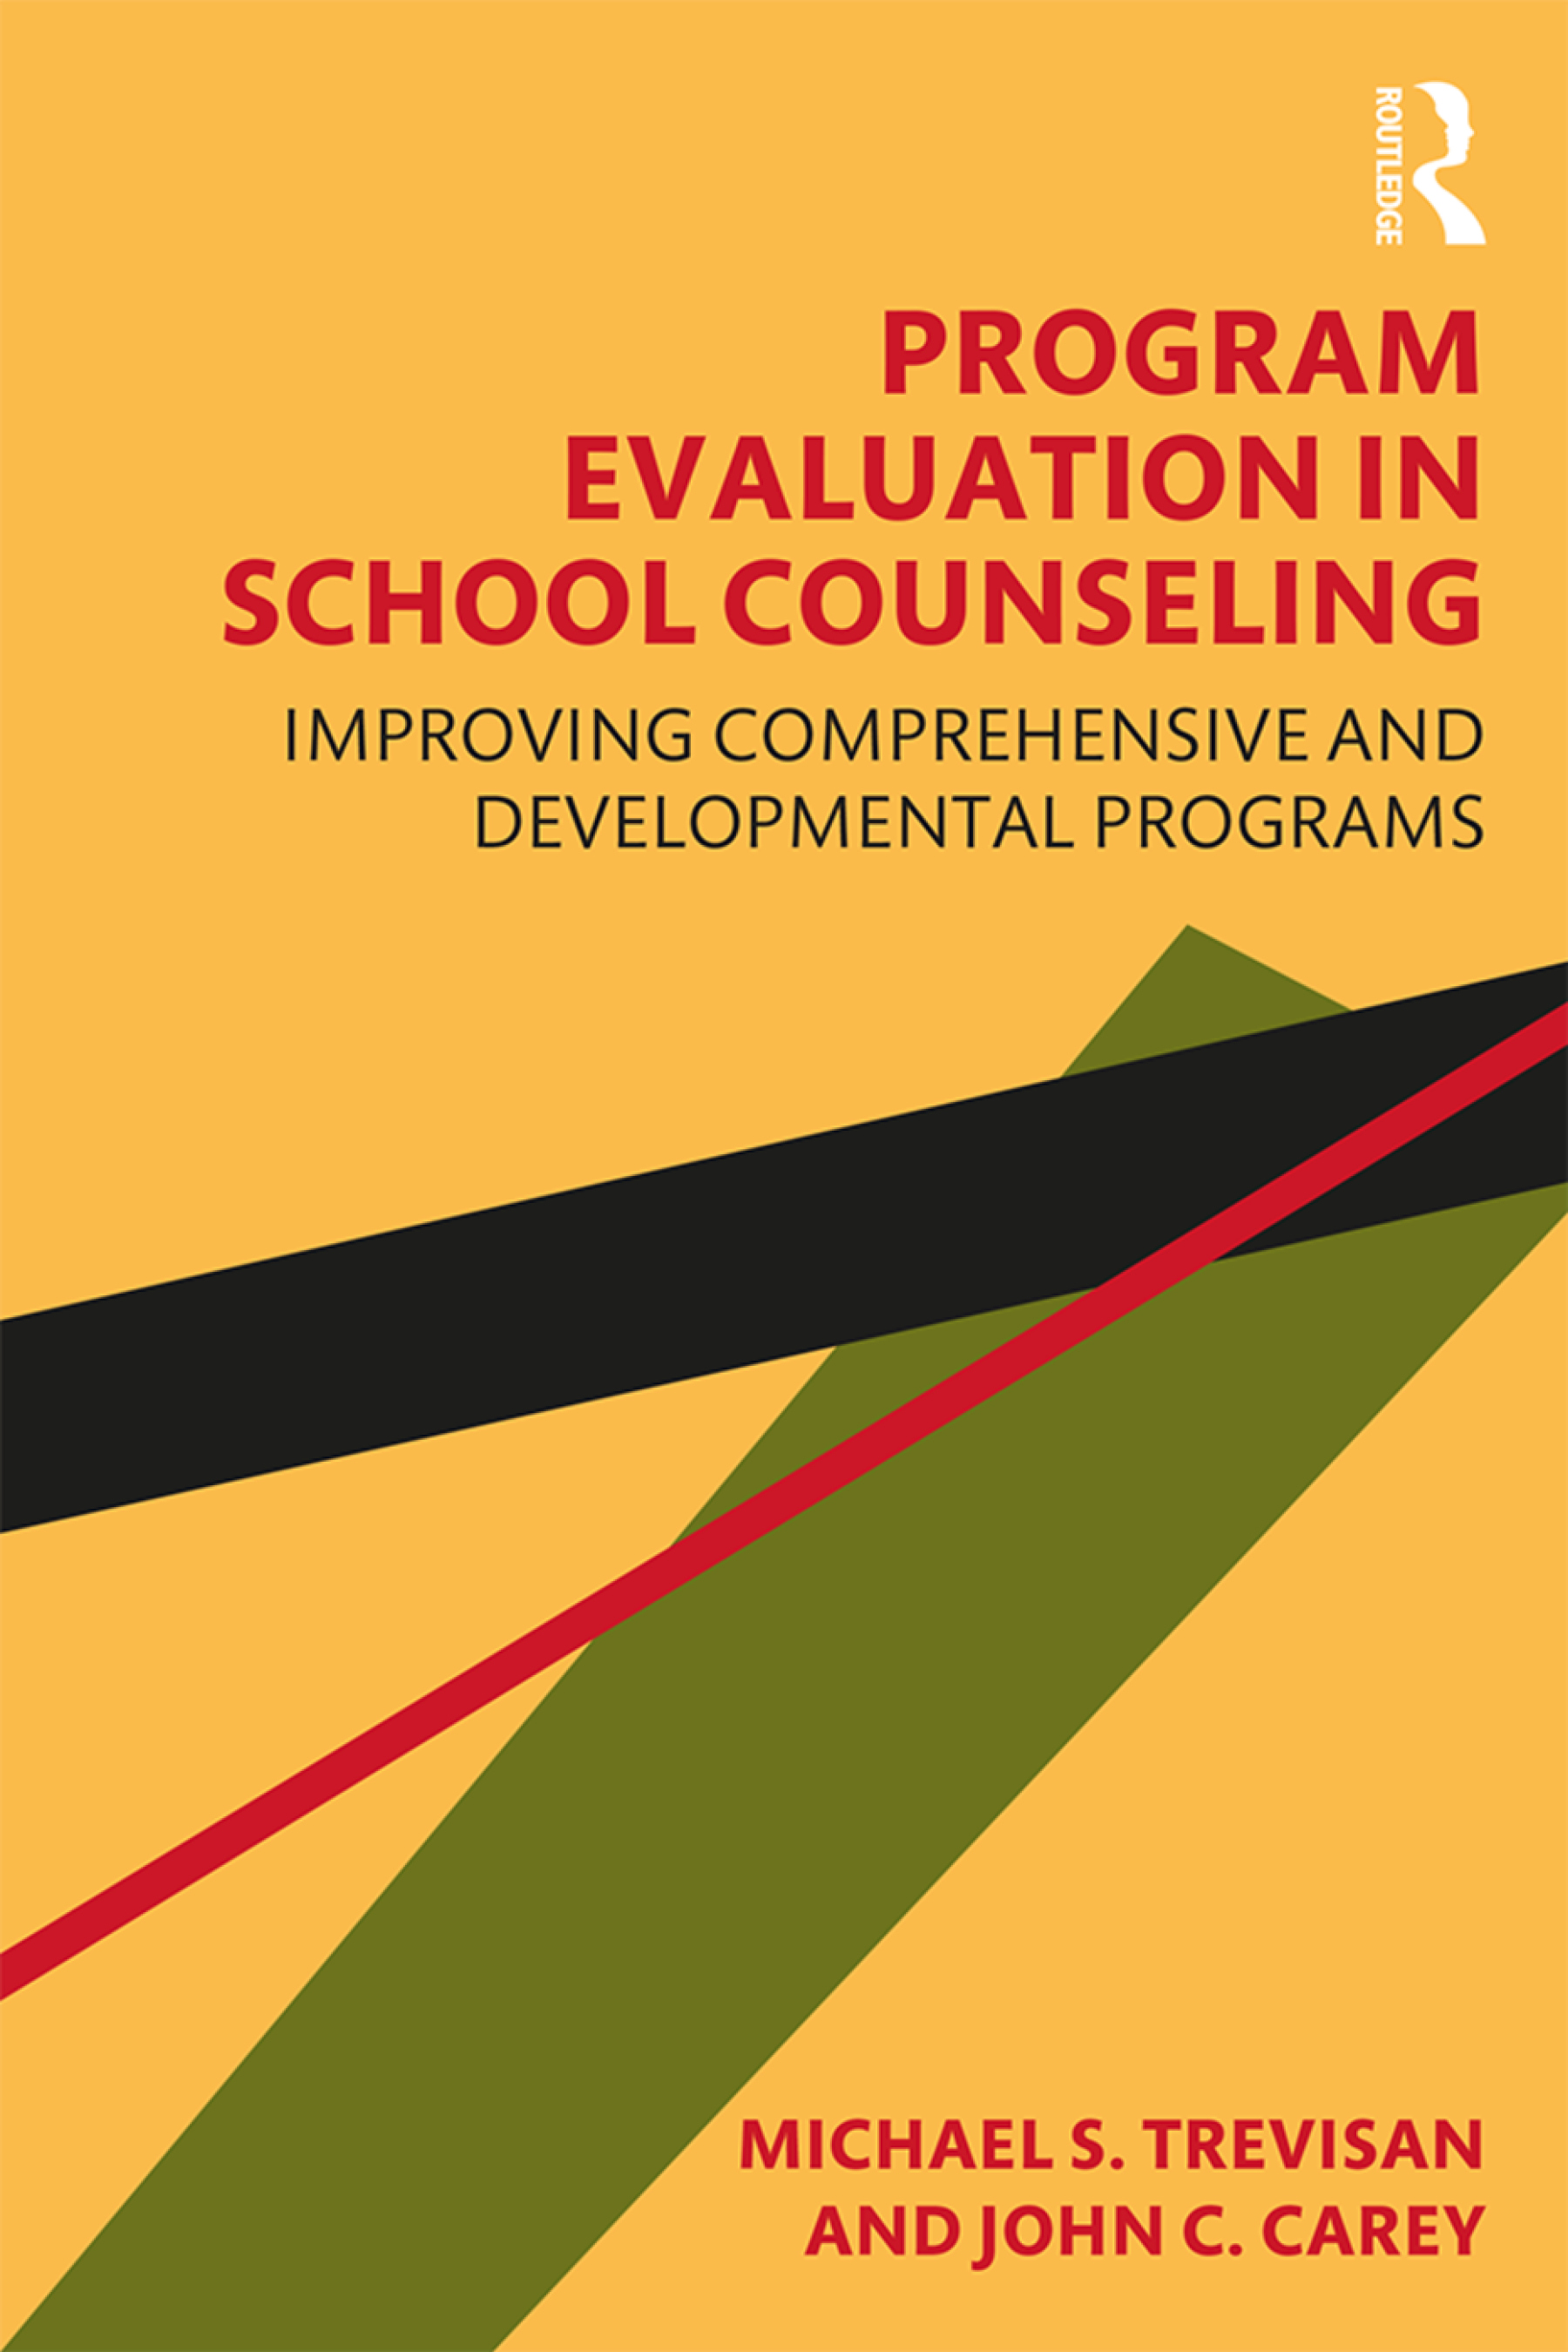 Program Evaluation in School Counseling: Improving Comprehensive and Developmental Programs book cover